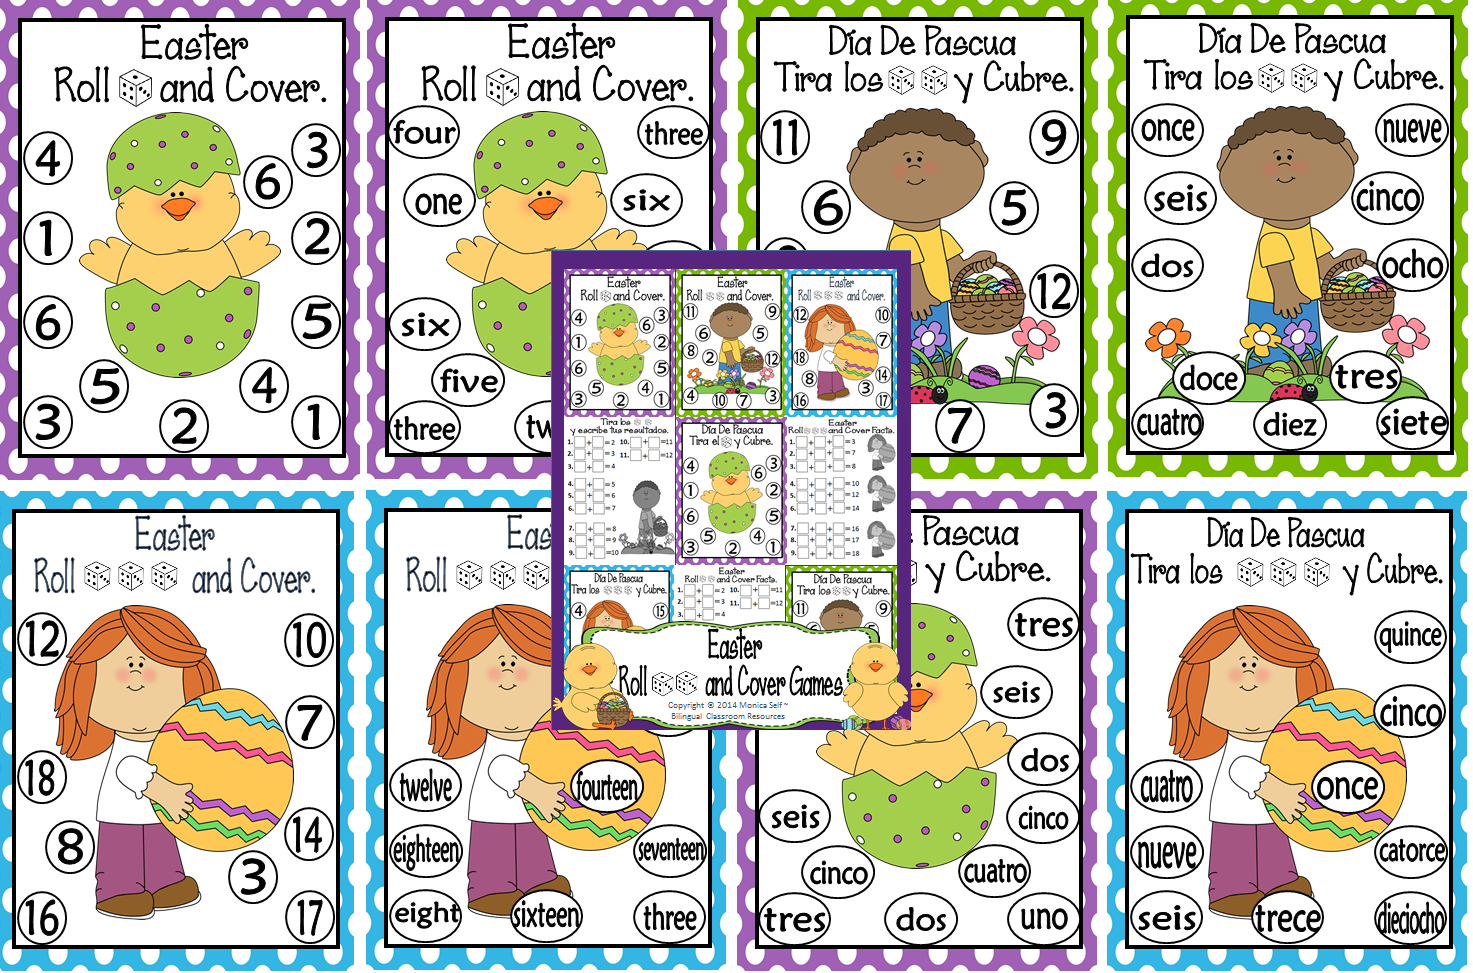 http://www.teacherspayteachers.com/Product/Easter-Roll-and-Cover-Games-1180090